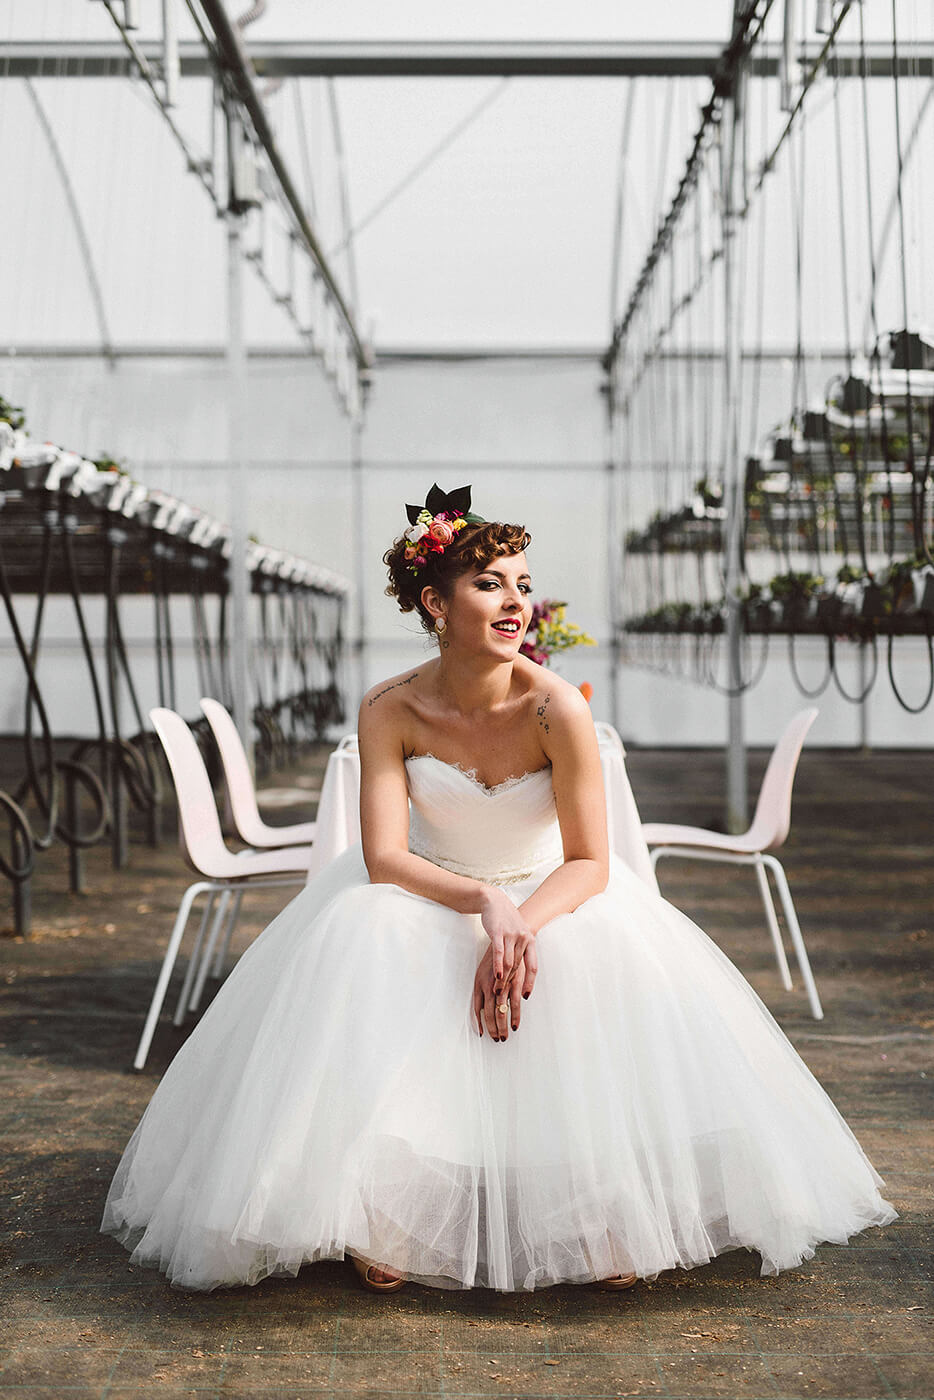 roma-organizacao-eventos-editorial-mid-century-modern-wedding-in-a-strawberry-field-17